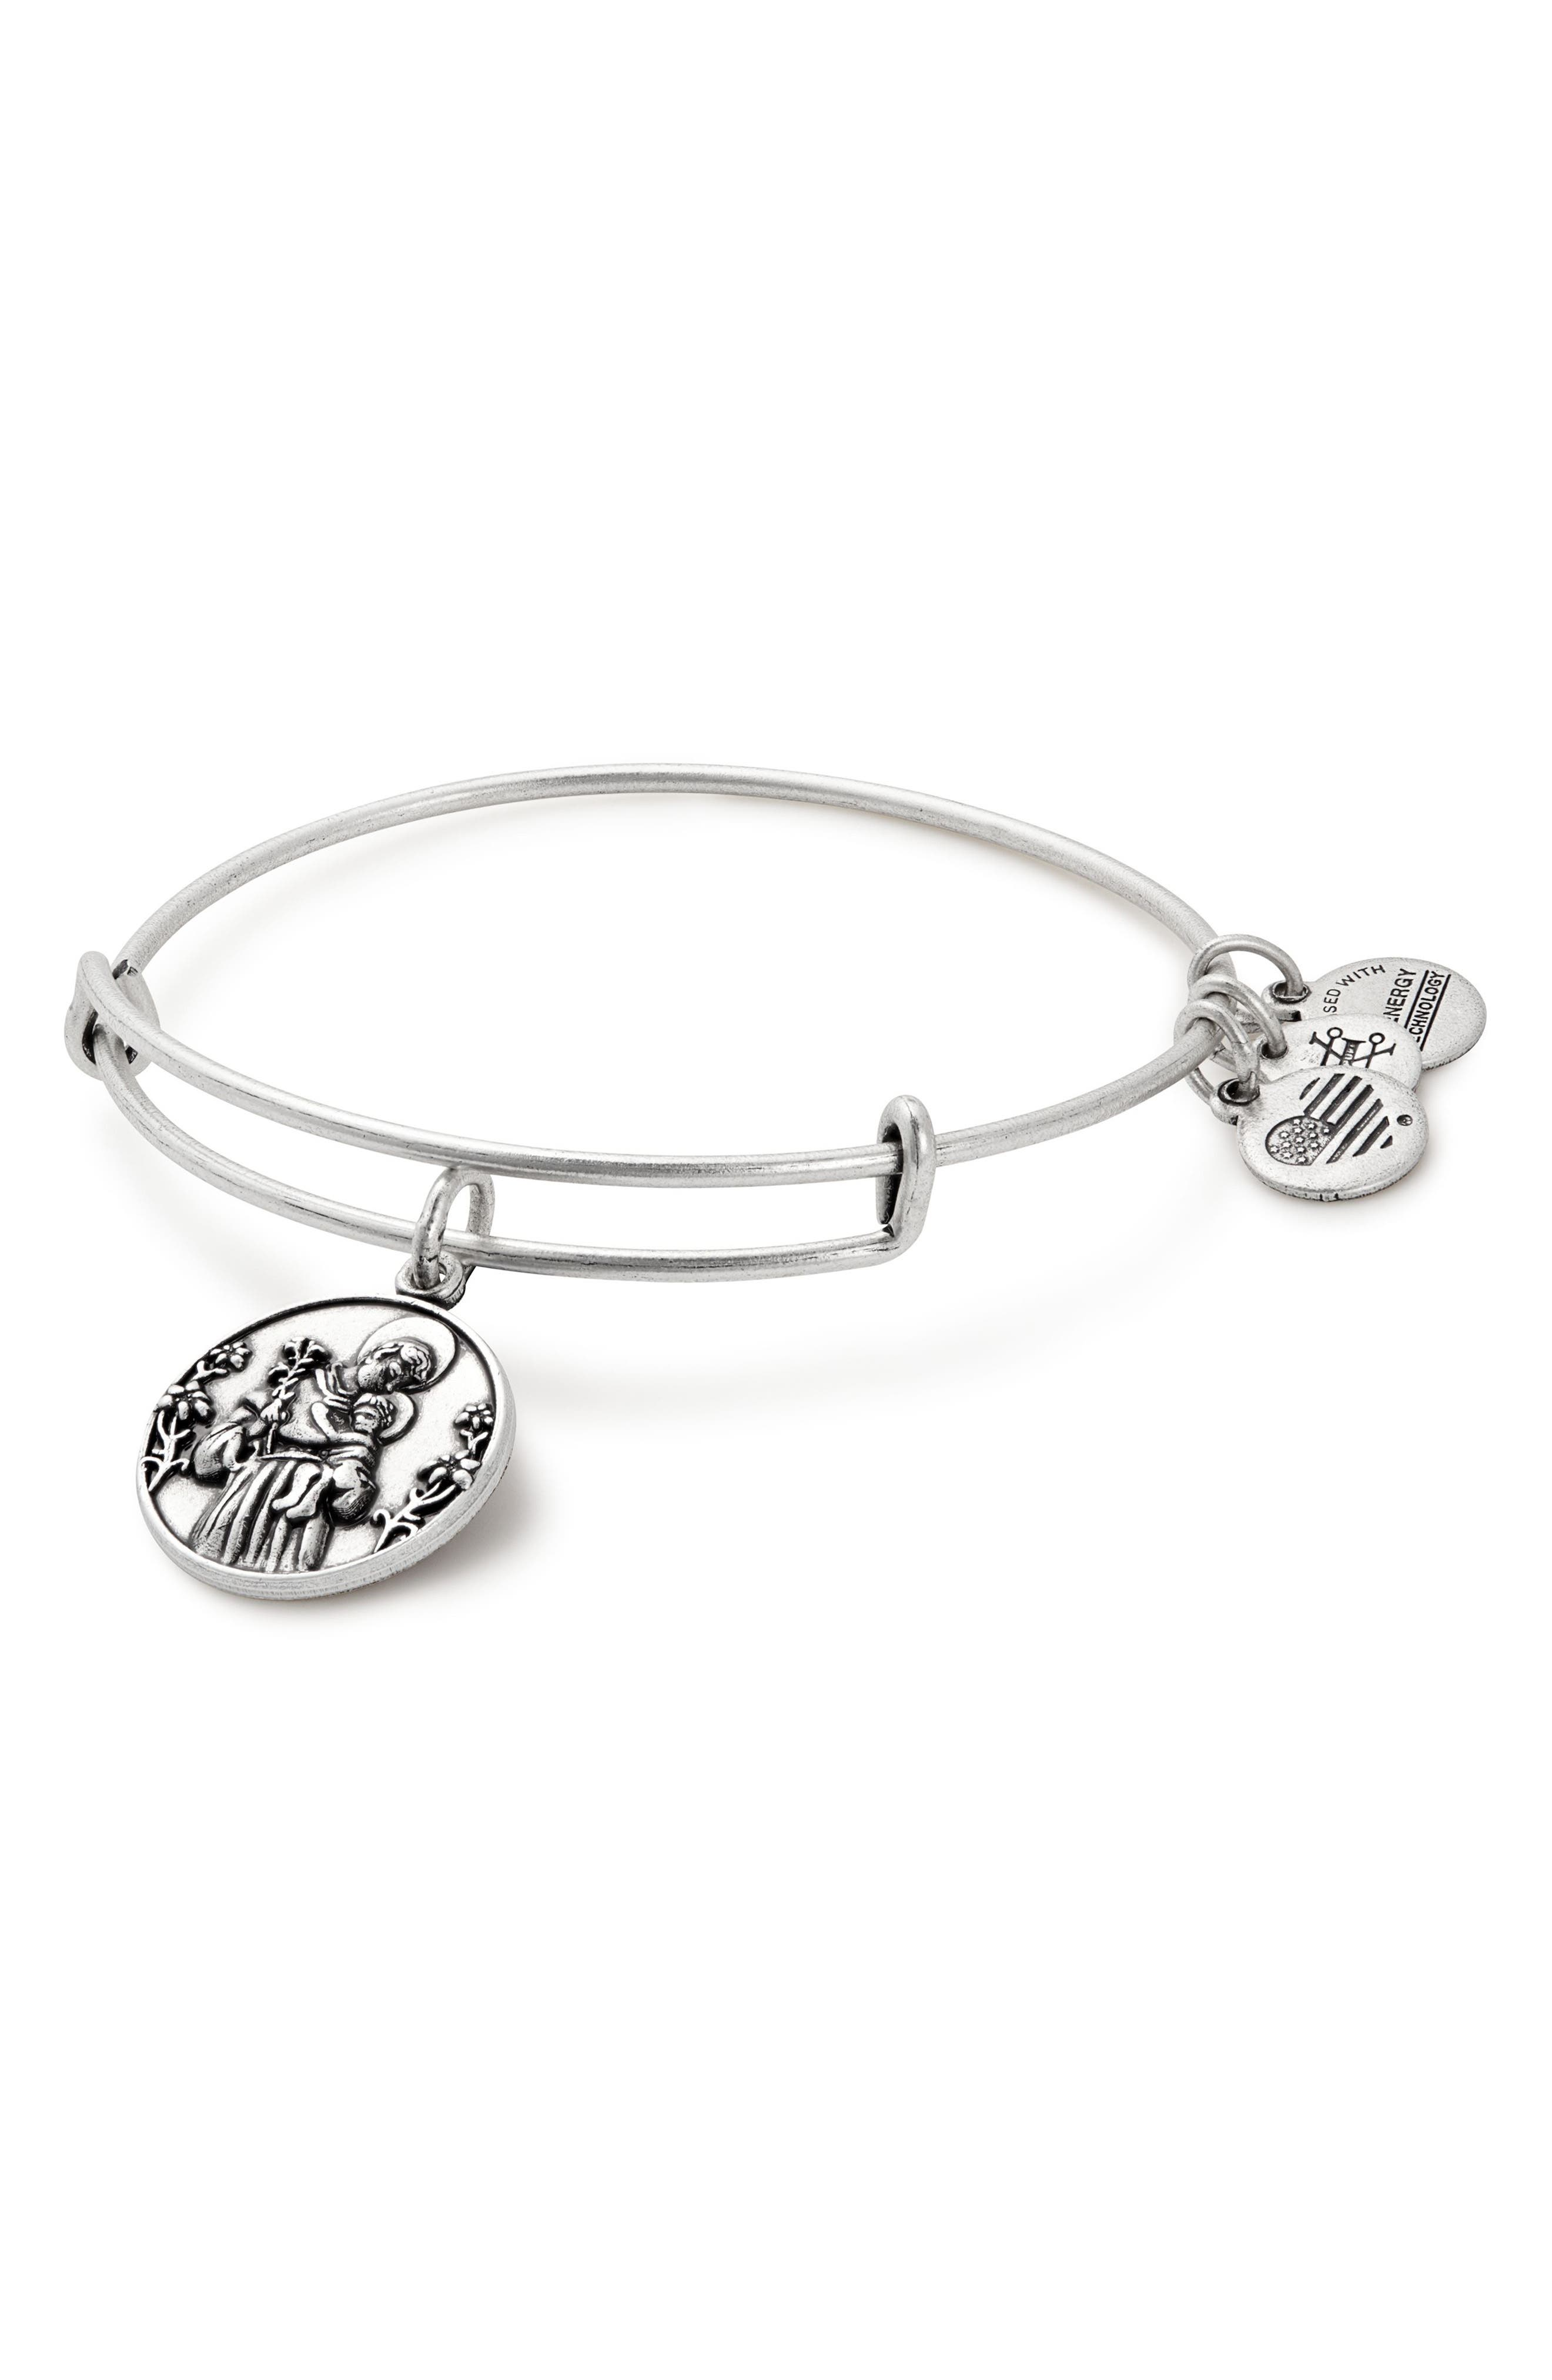 St. Anthony Adjustable Wire Bangle,                             Main thumbnail 1, color,                             040